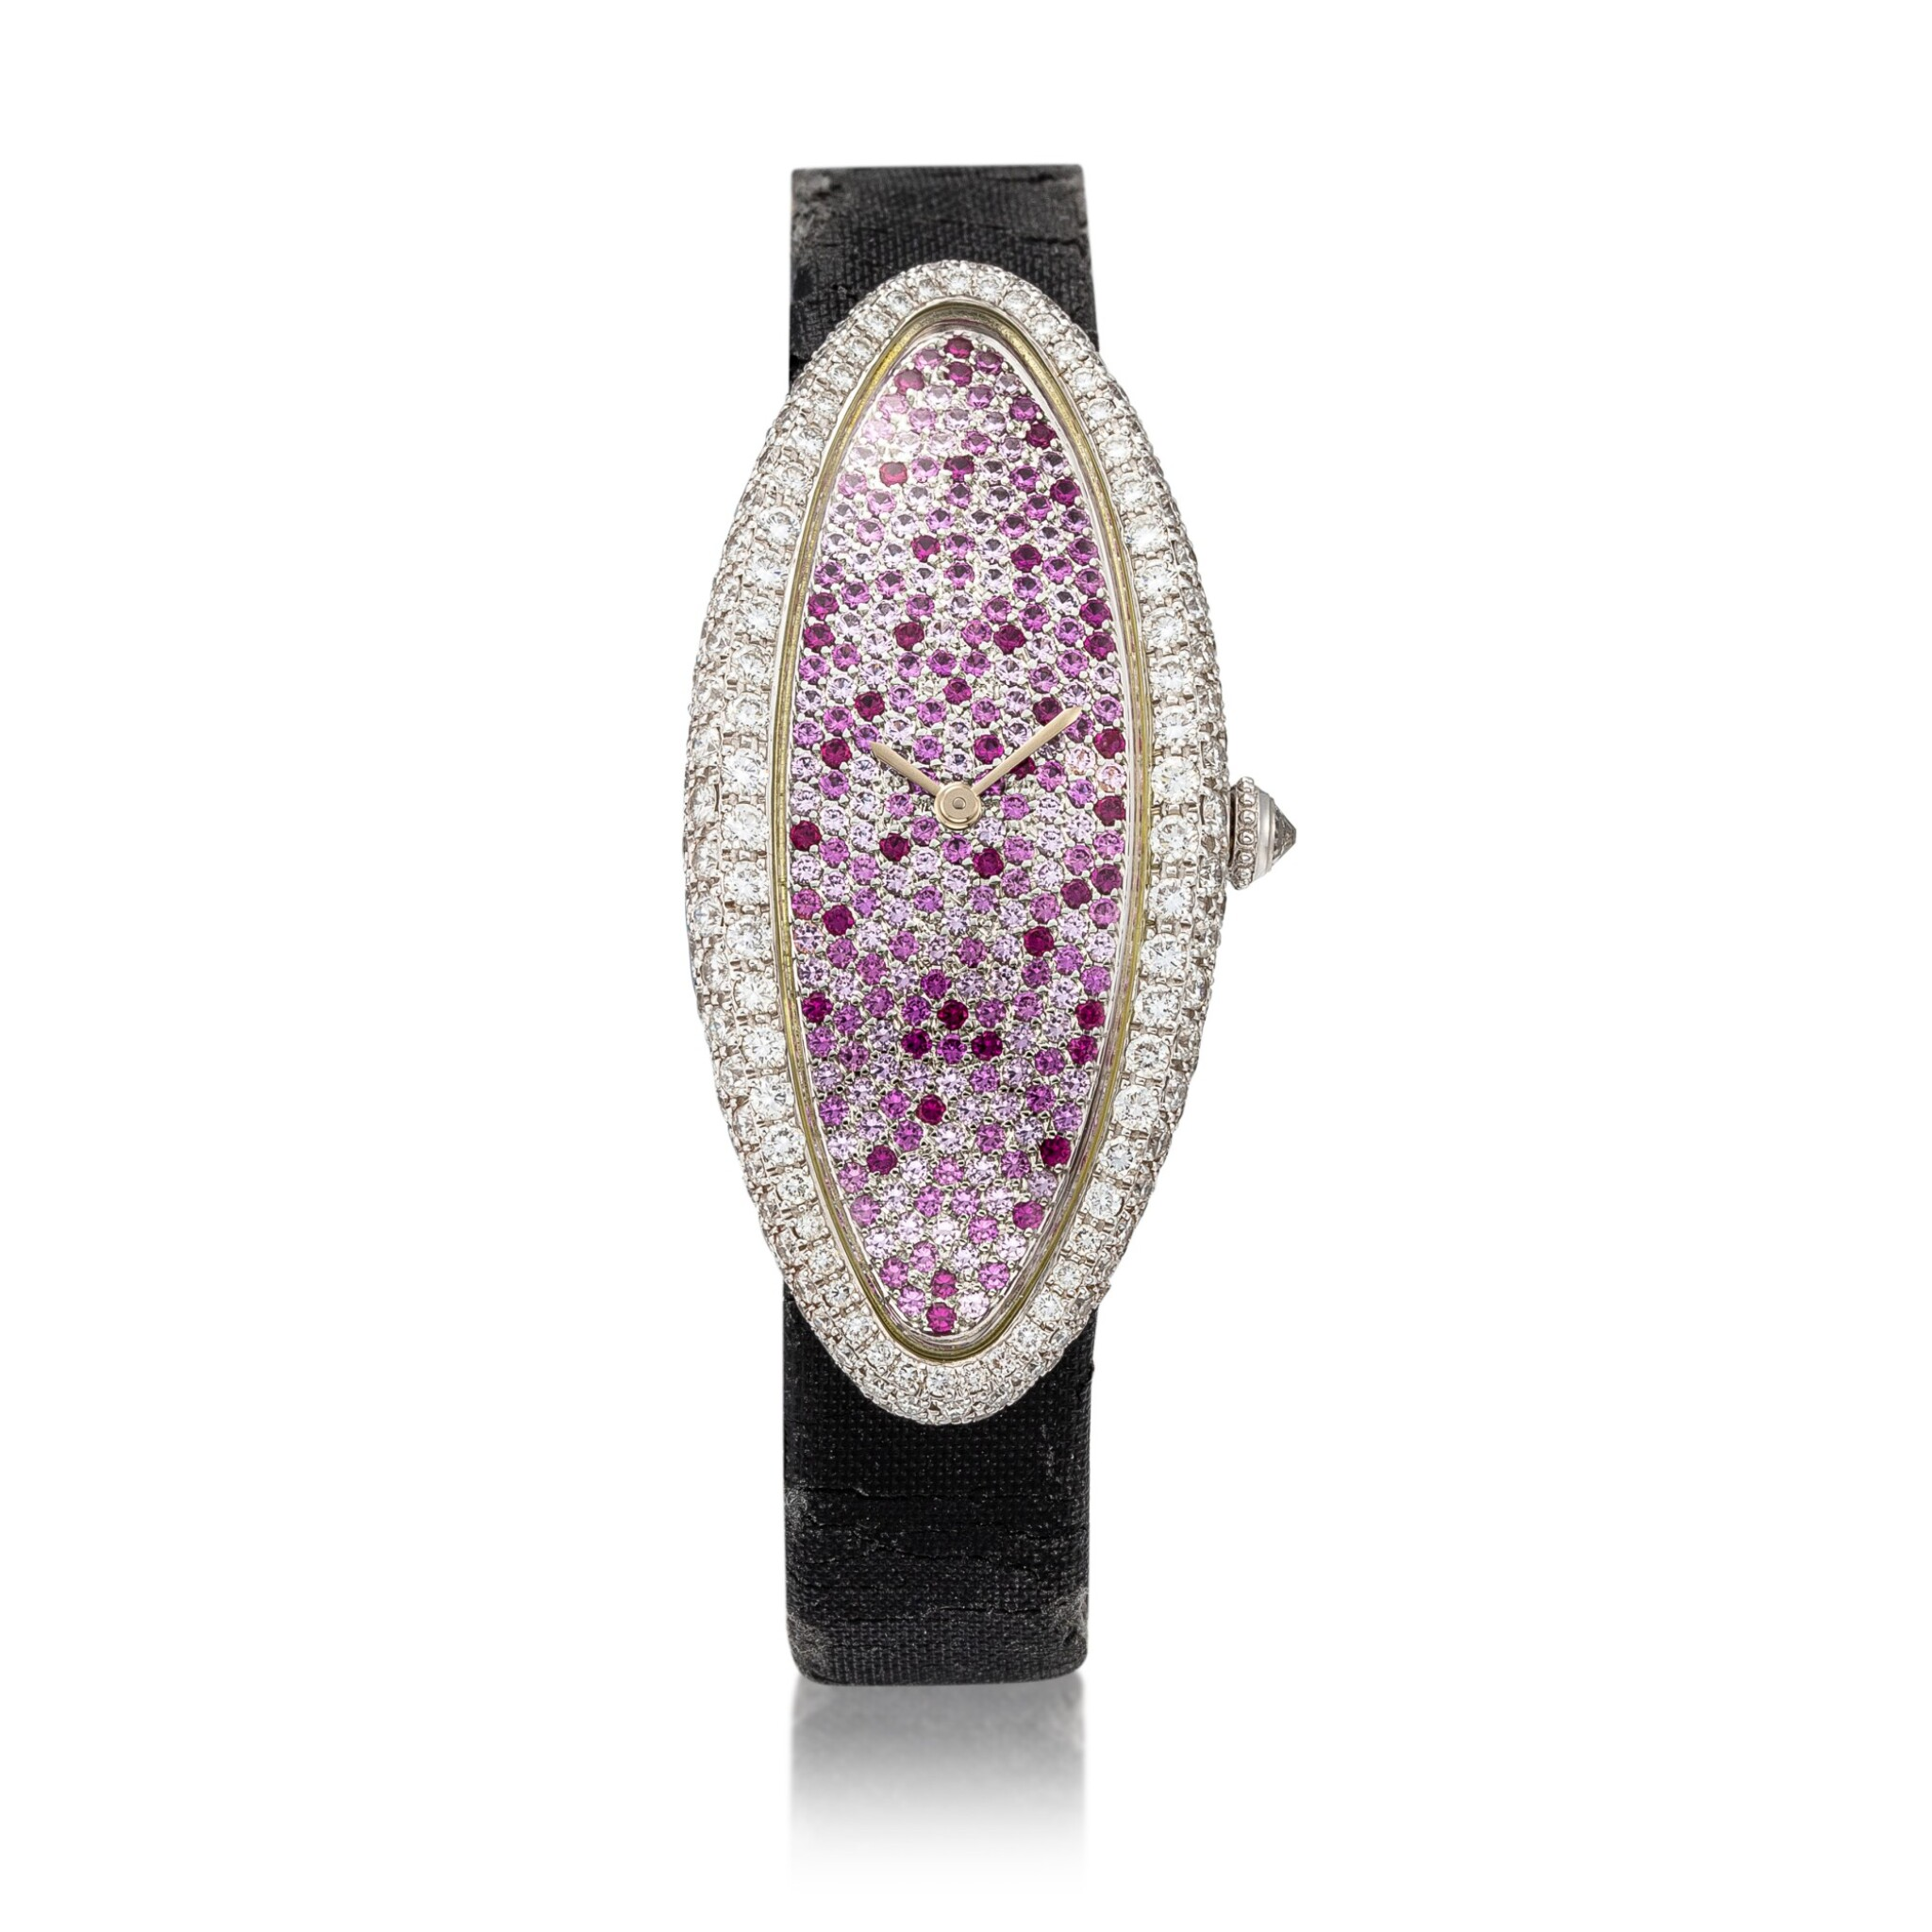 View full screen - View 1 of Lot 64. Baignoire Allongée, Ref. 2514 A white gold, diamond and pink sapphire-set wristwatch, Circa 2000 | 卡地亞 2514型號「Baignoire Allongée」白金鑲鑽石及粉紅剛玉腕錶,年份約2000.